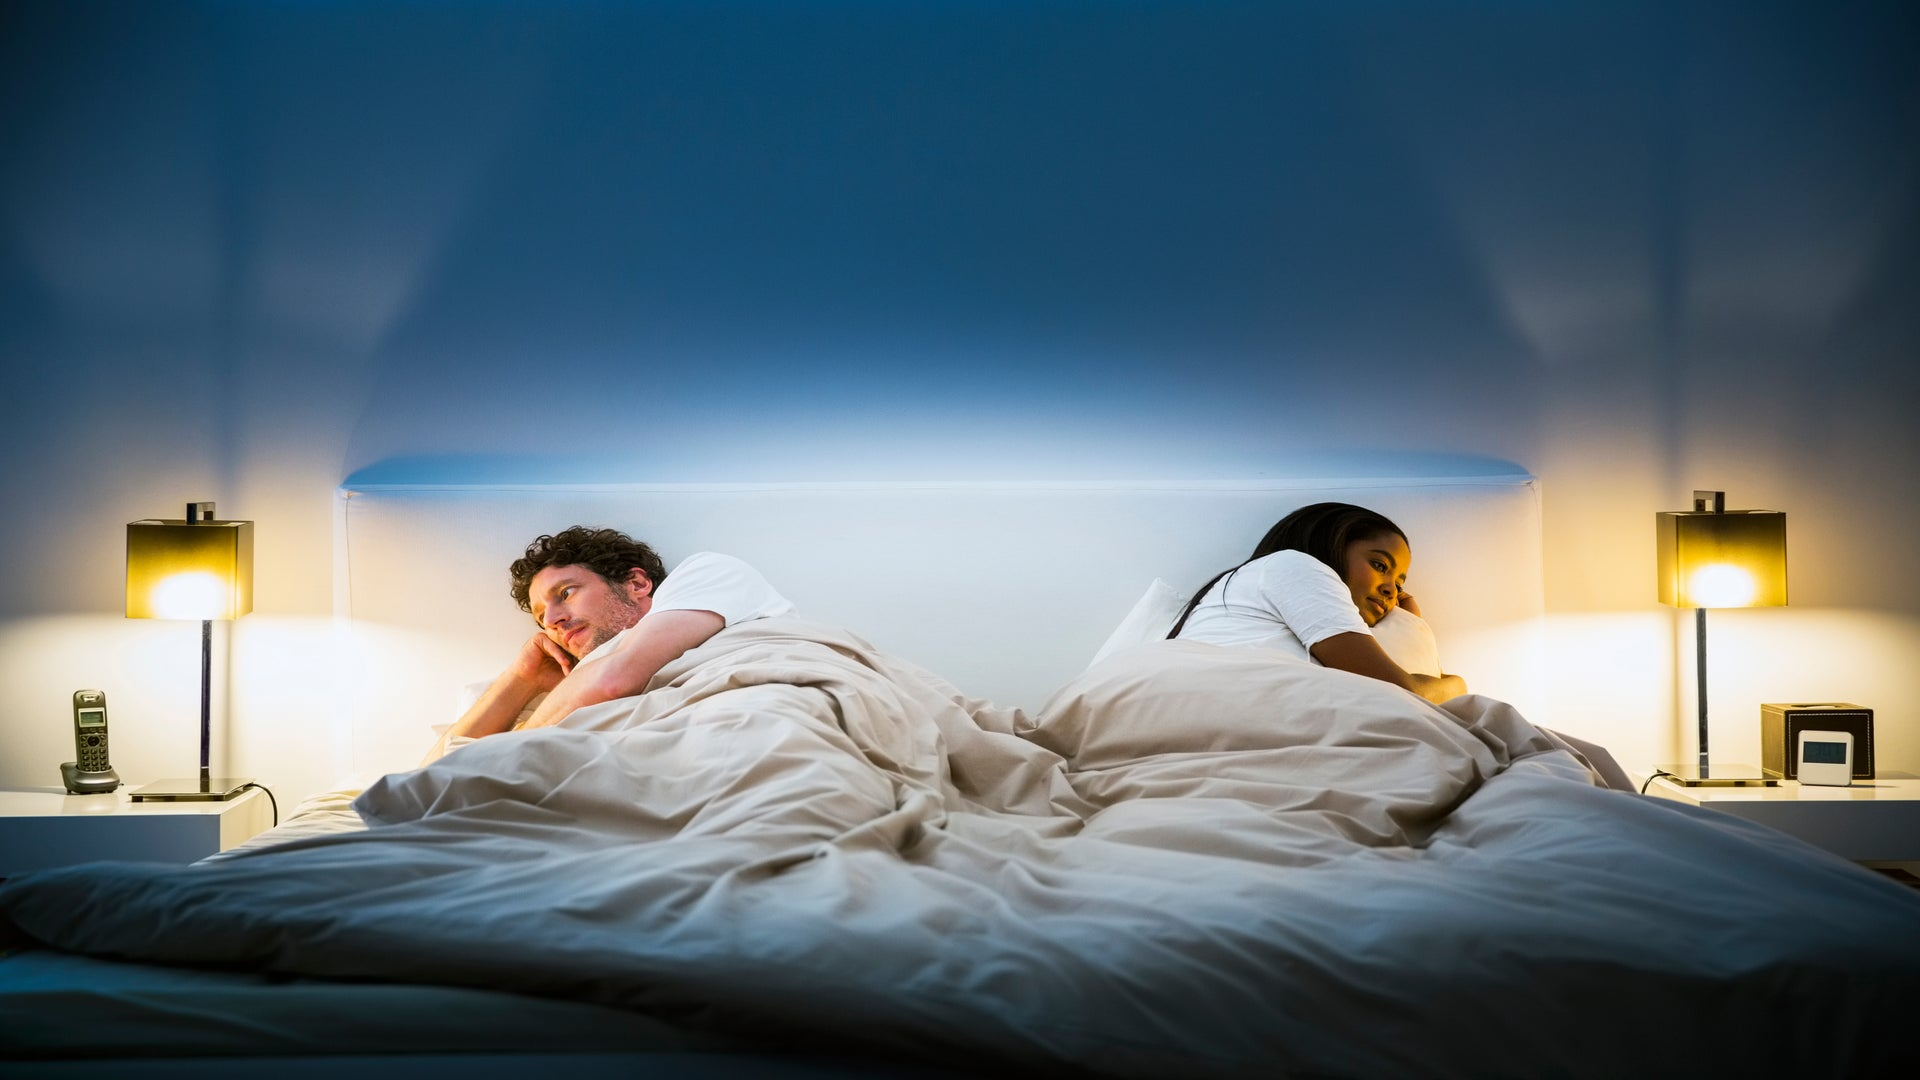 Intimacy Intervention: 'Suddenly My Man Doesn't Want to Sleep With Me Anymore'